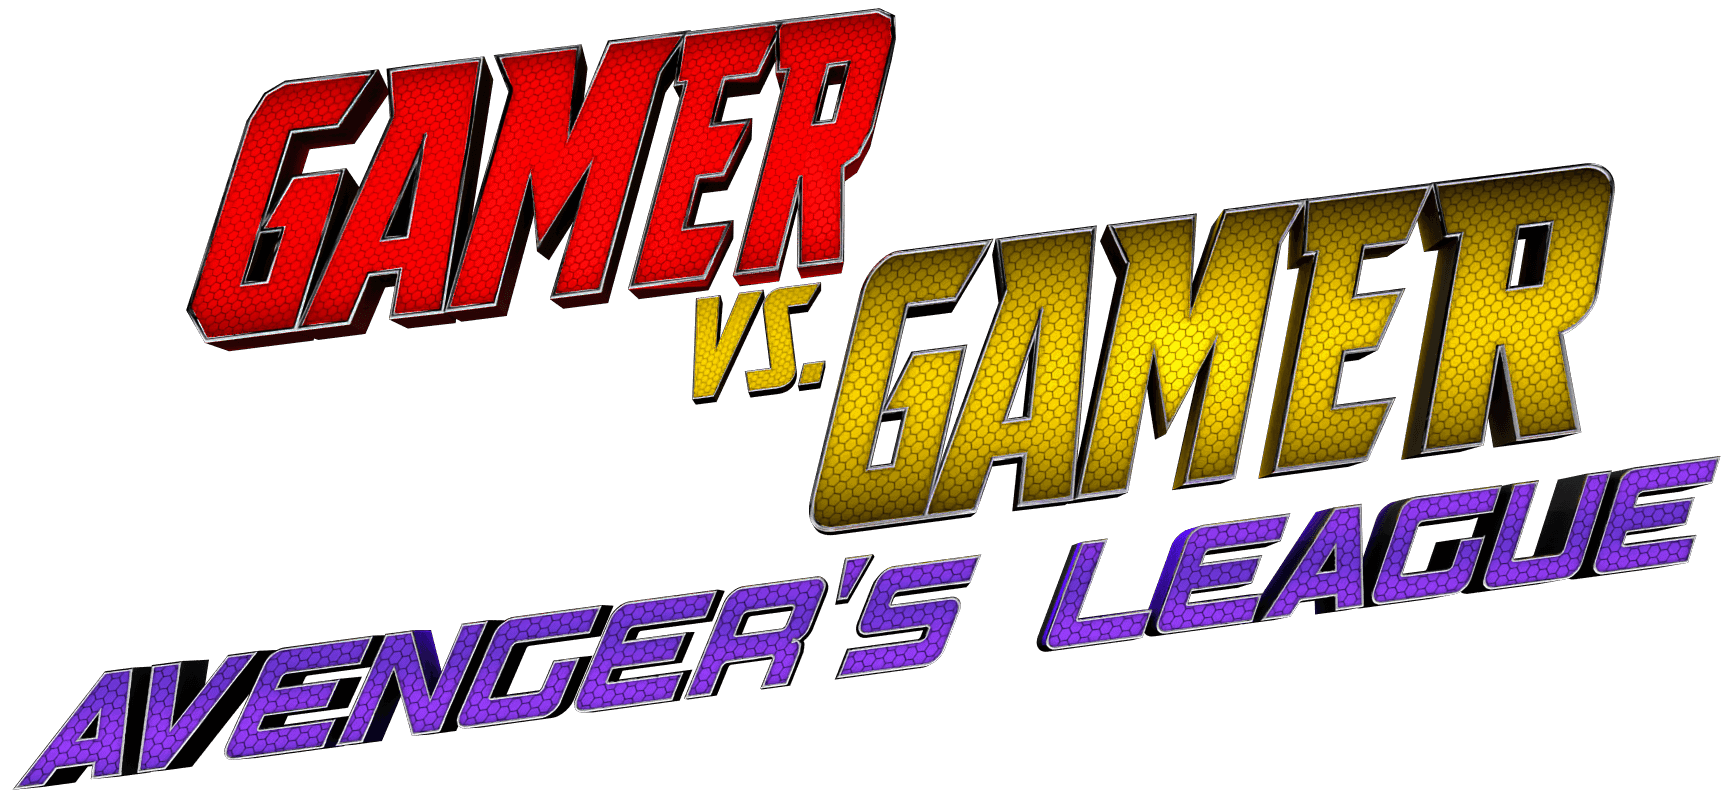 Gamer vs Gamer, Gaming Trailer- Video Games, Birthday Party 2 You,